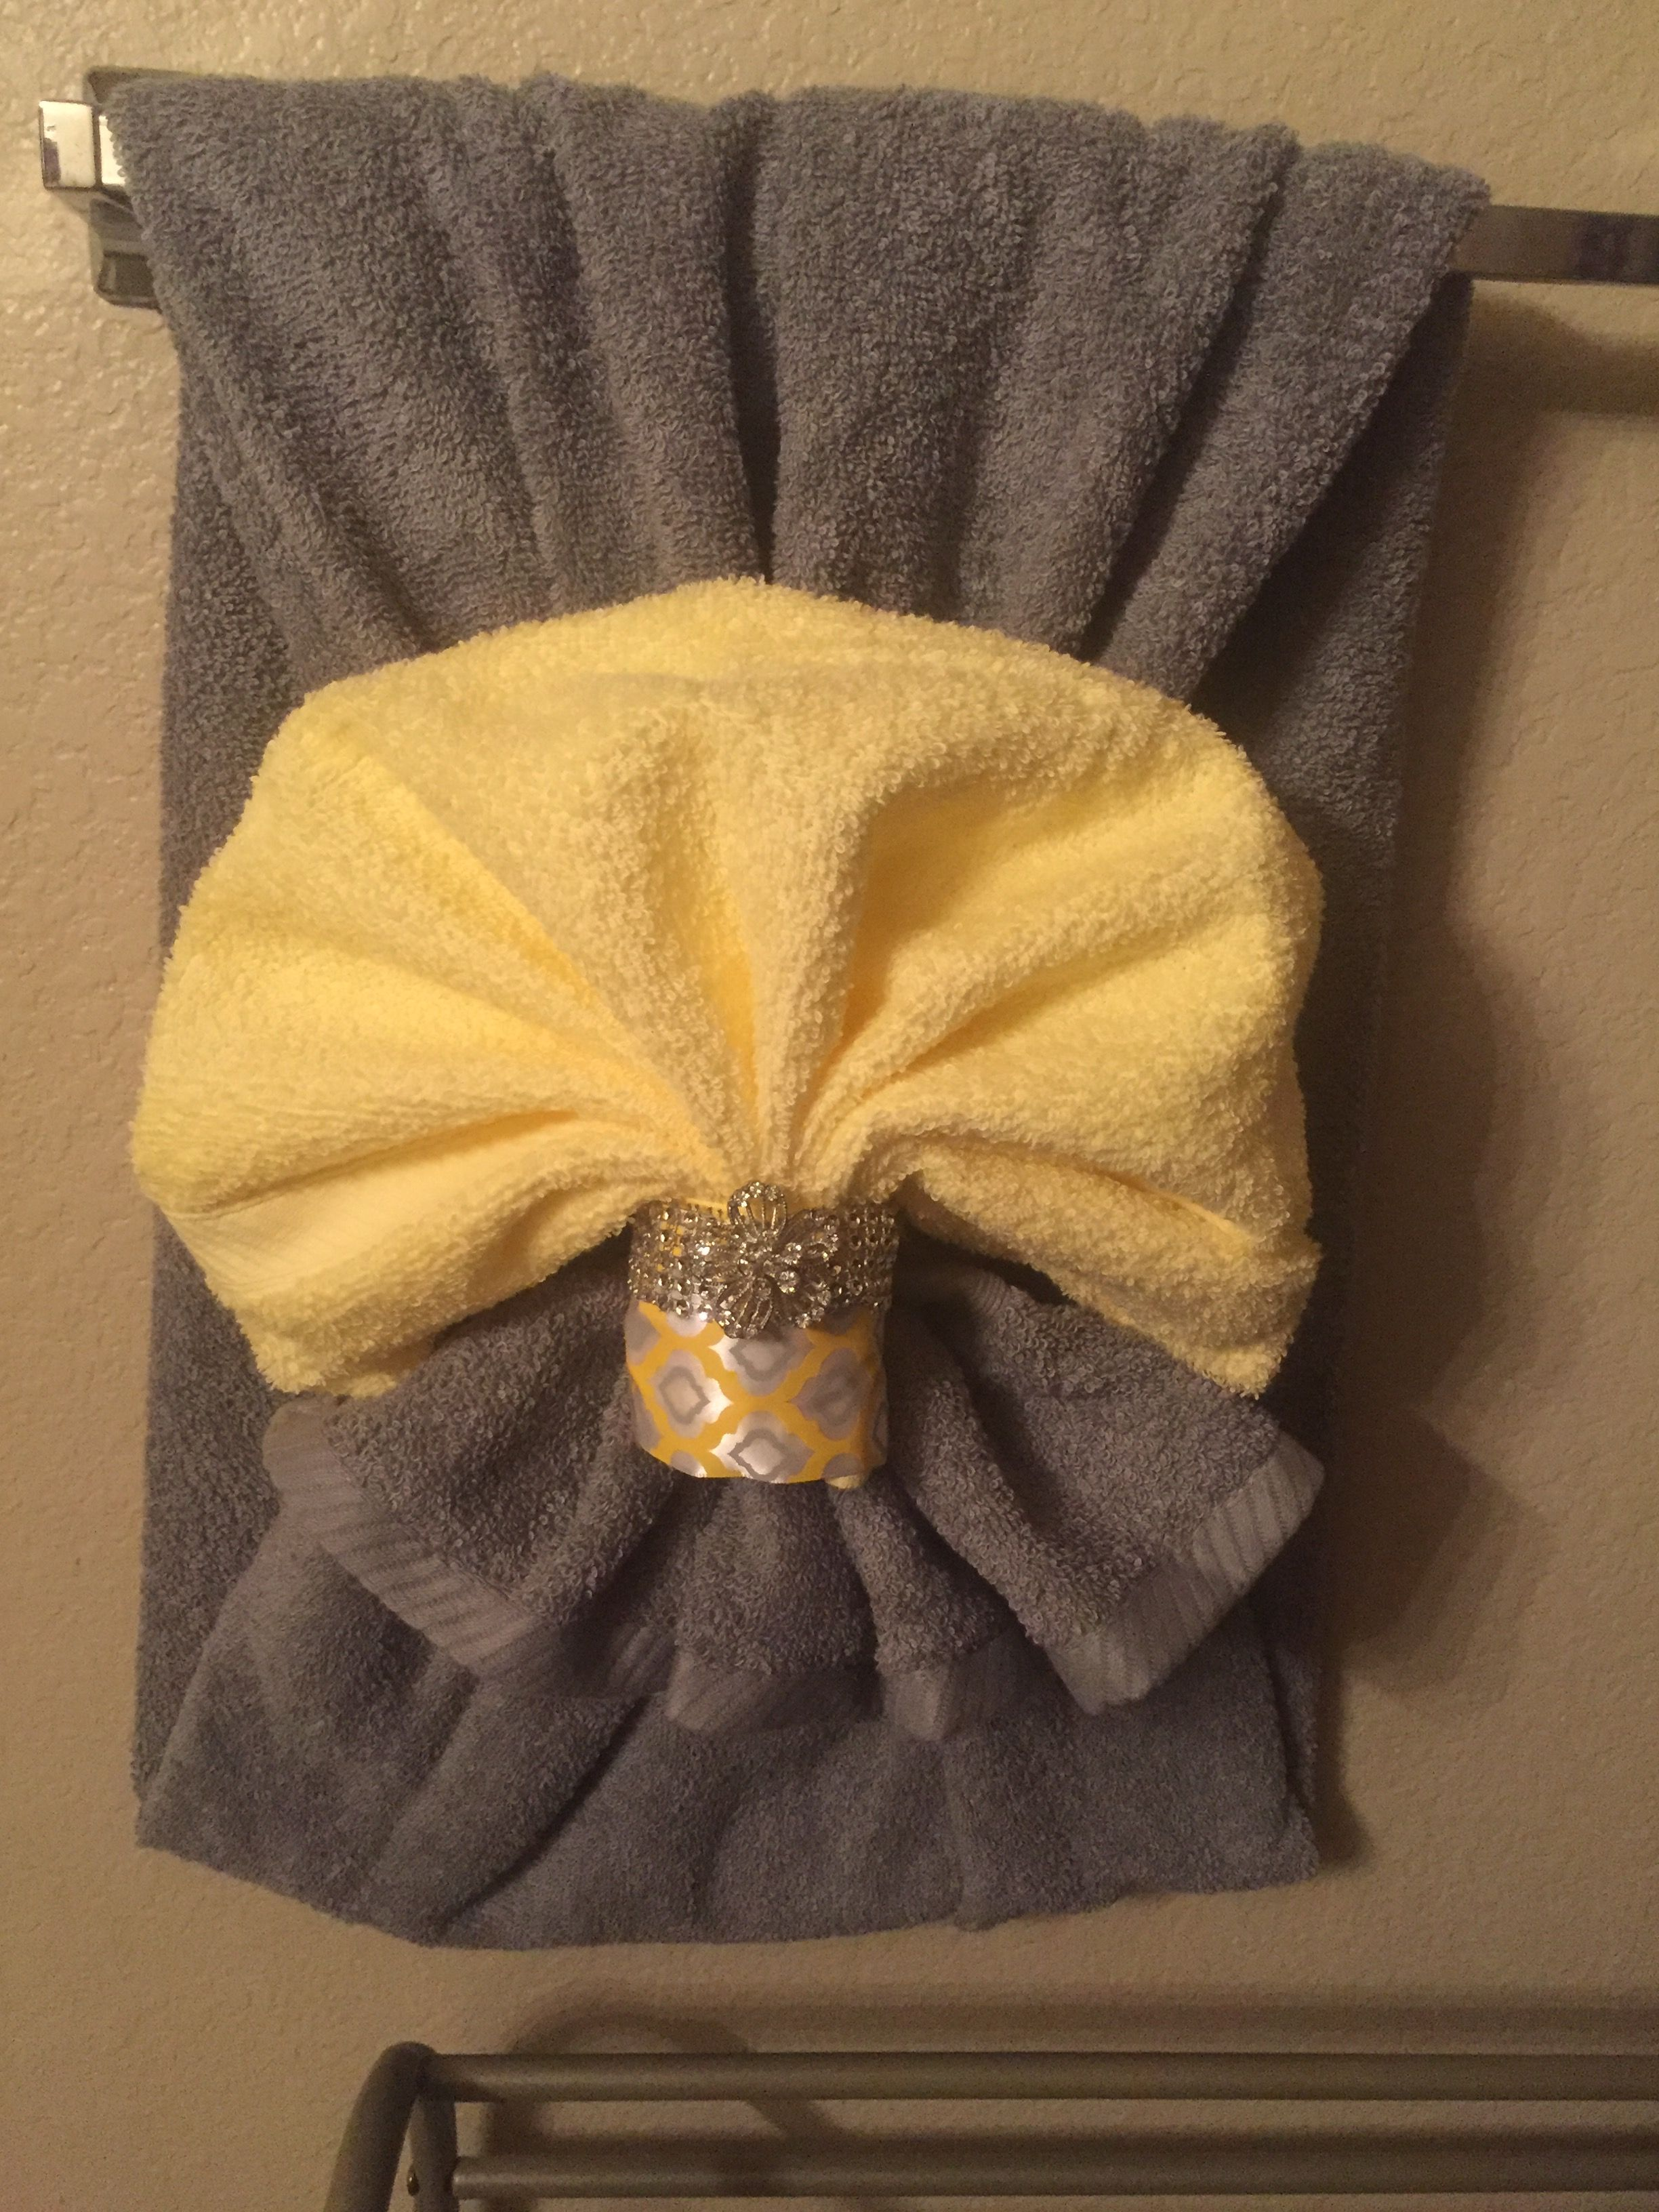 Towel Deco Bathroom Towel Decor Bathroom Towels Bathroom